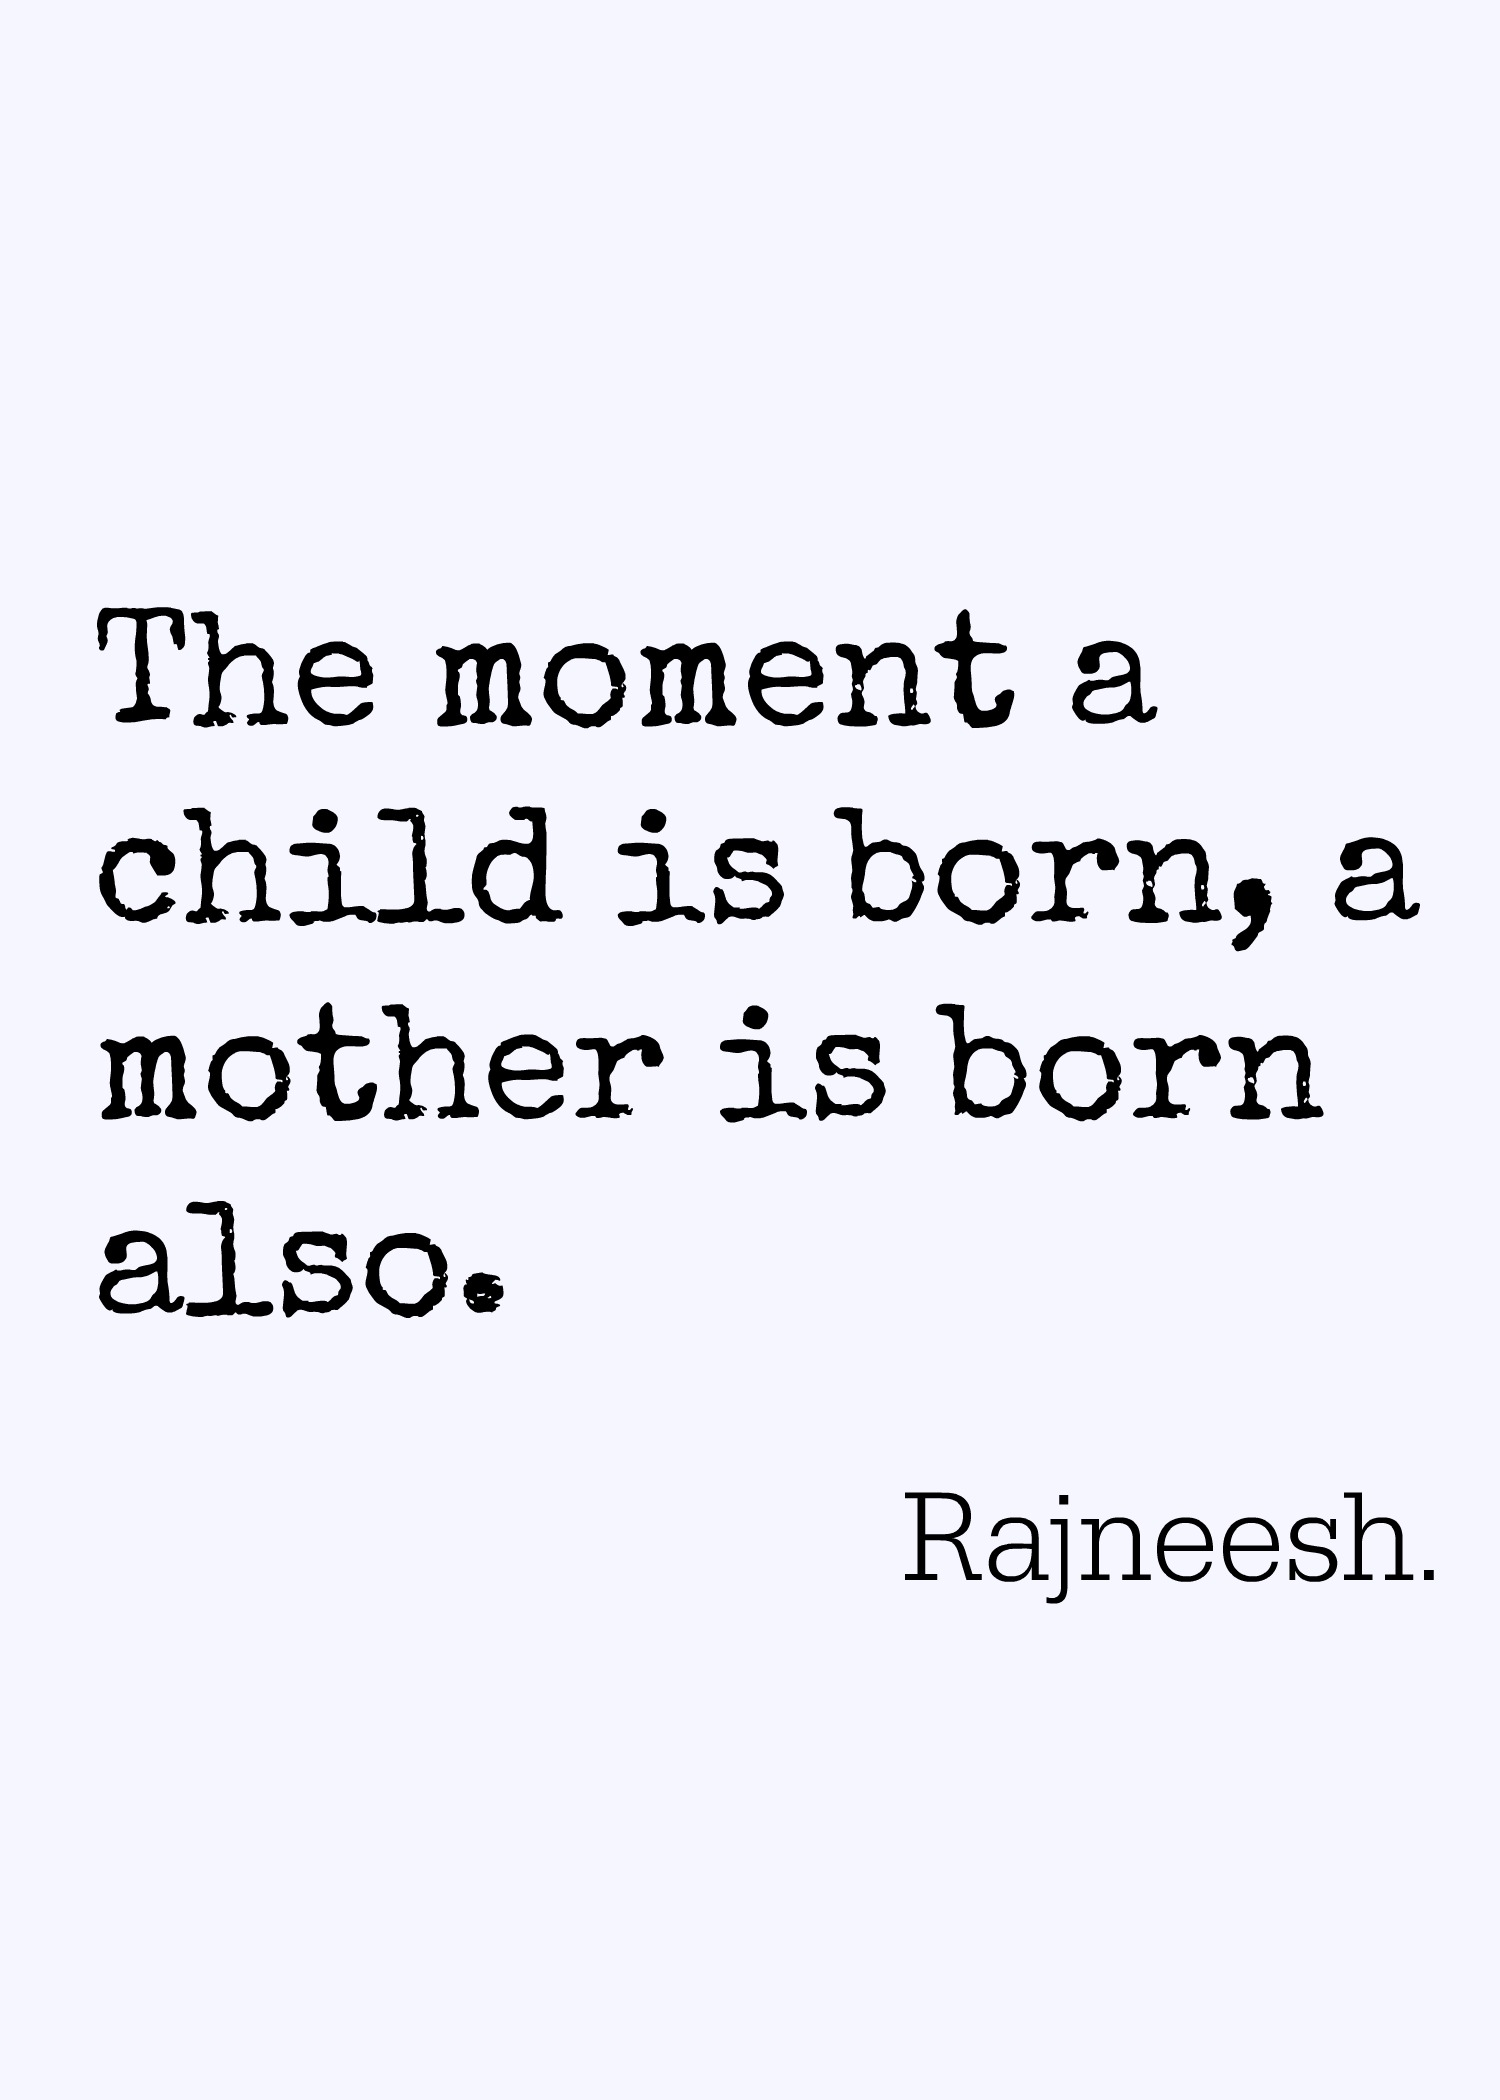 Two Meaningful Quotes About Motherhood